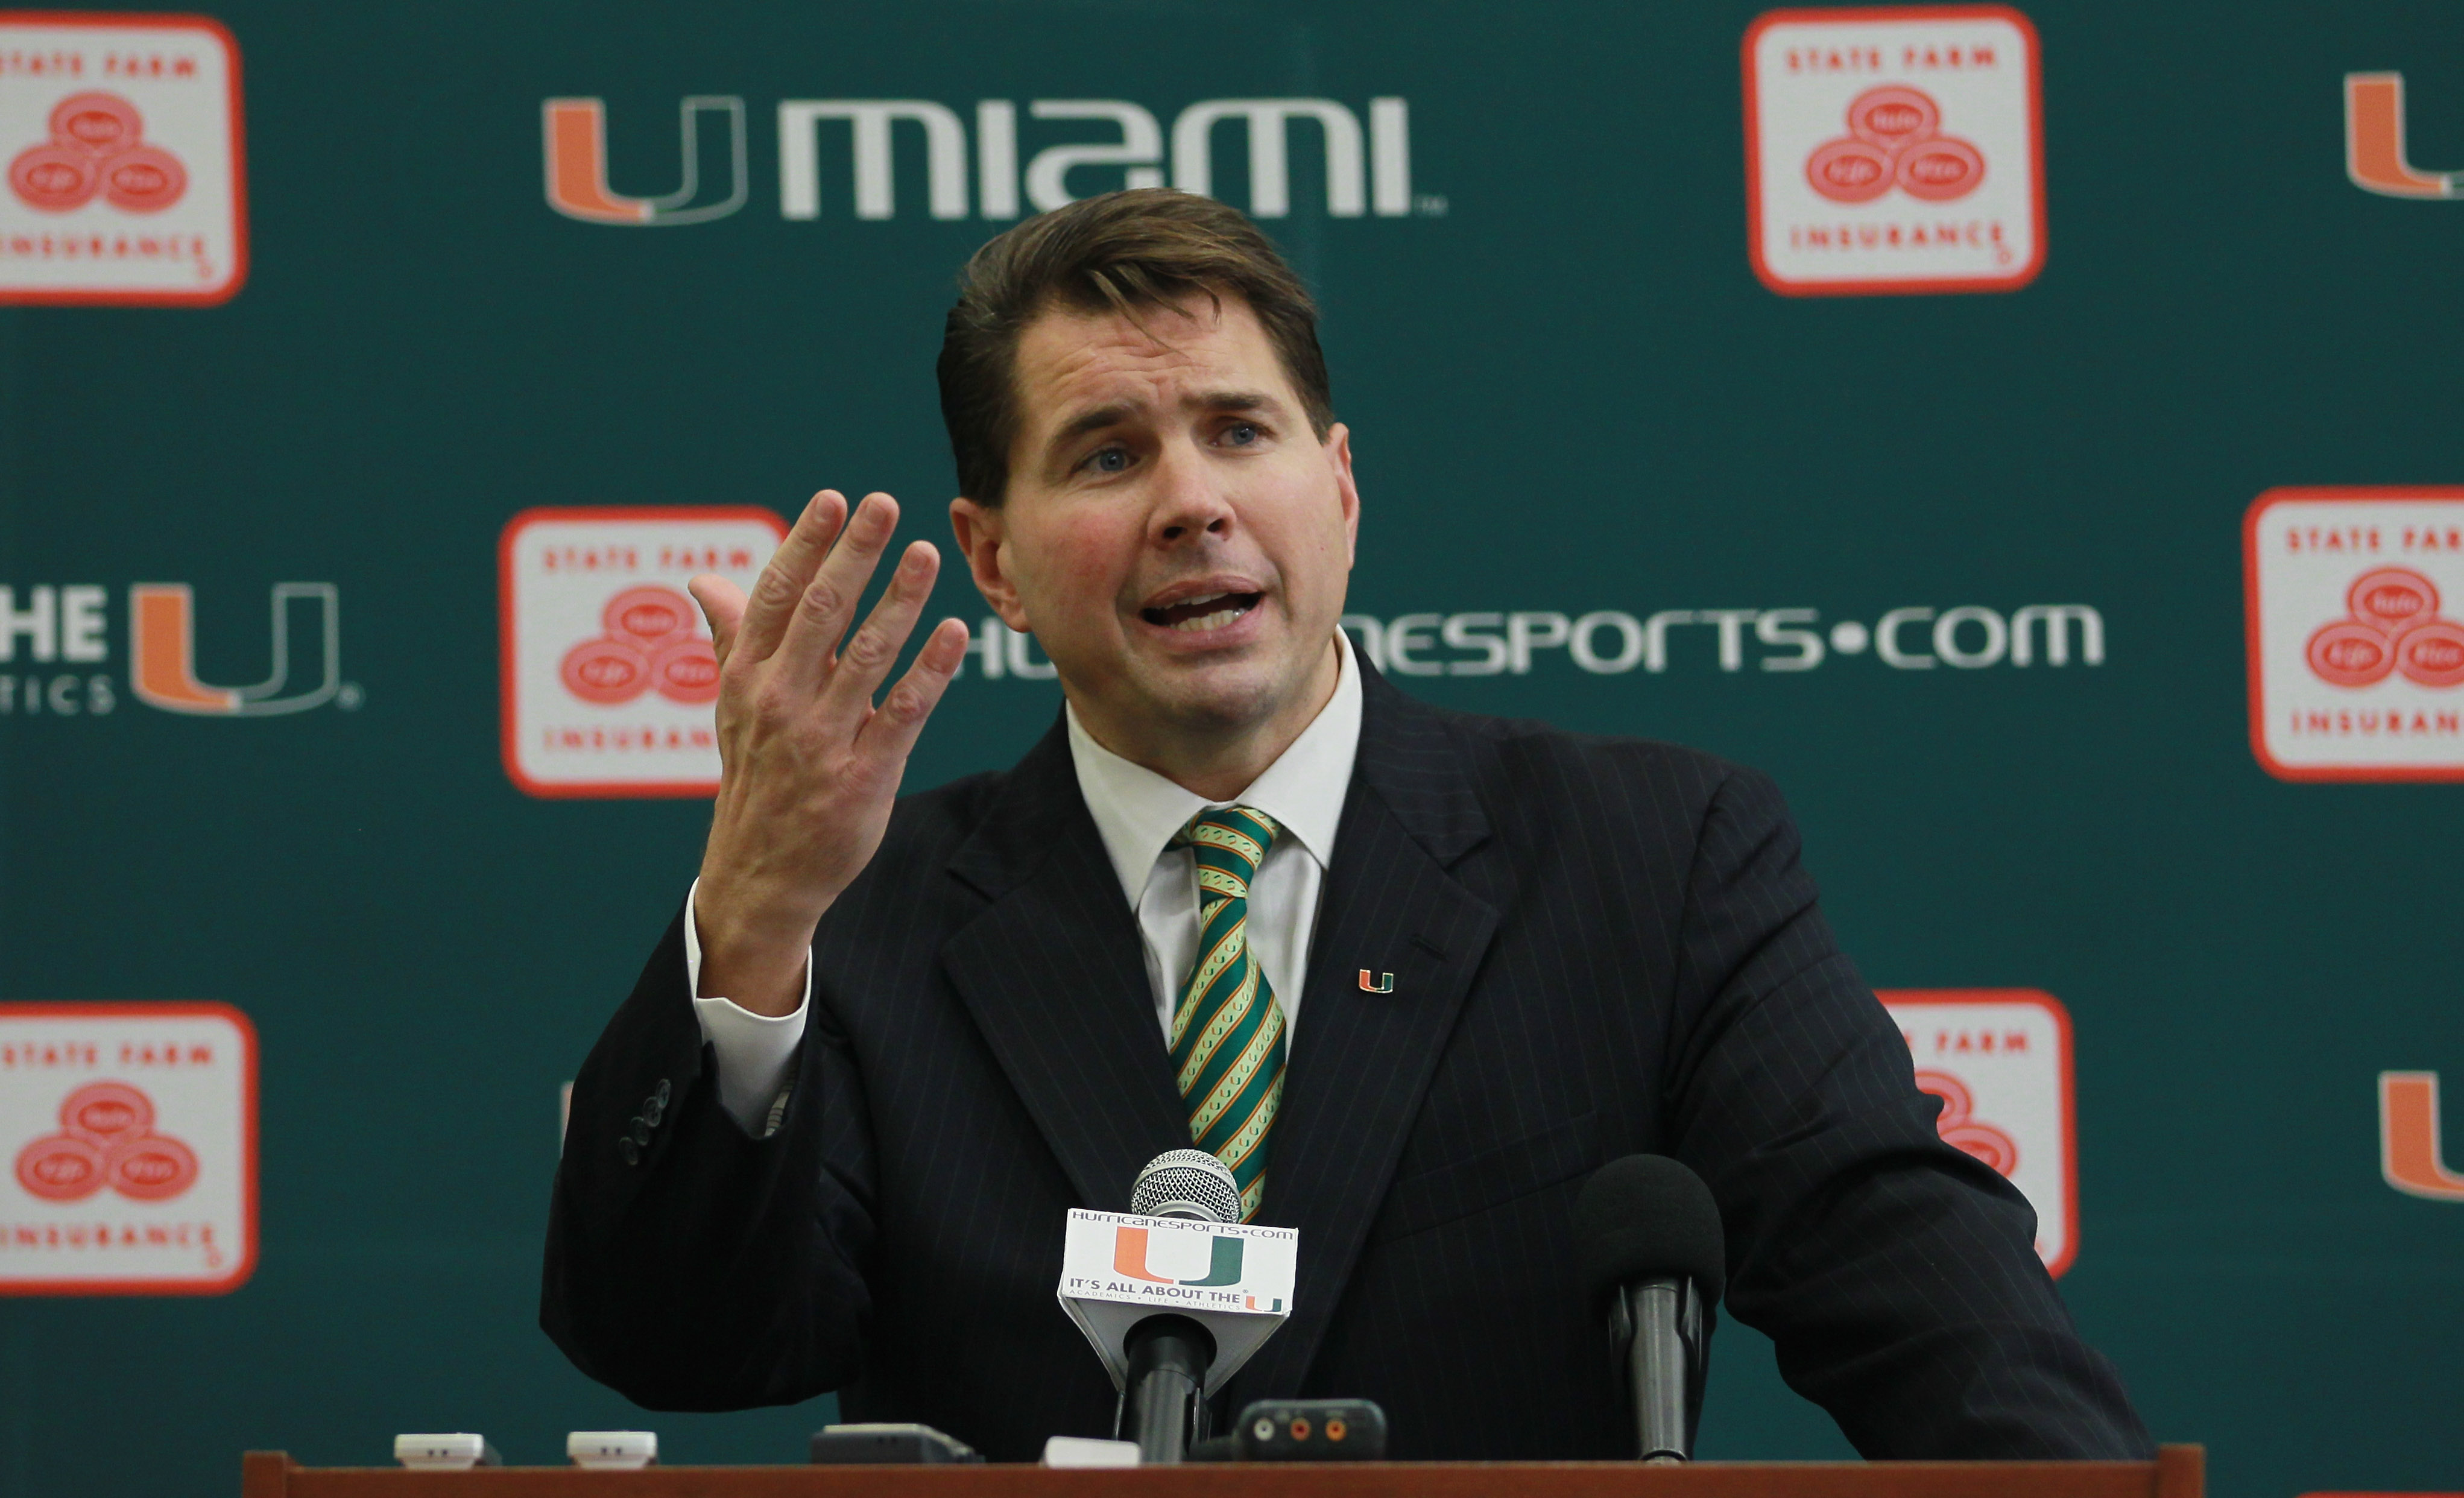 CORAL GABLES, FL - DECEMBER 13:  Former Temple University football coach Al Golden, 41, speaks to the media after being introduced as the new head coach at the University of Miami  on December 13, 2010 in Coral Gables, Florida.  Golden is replacing Randy